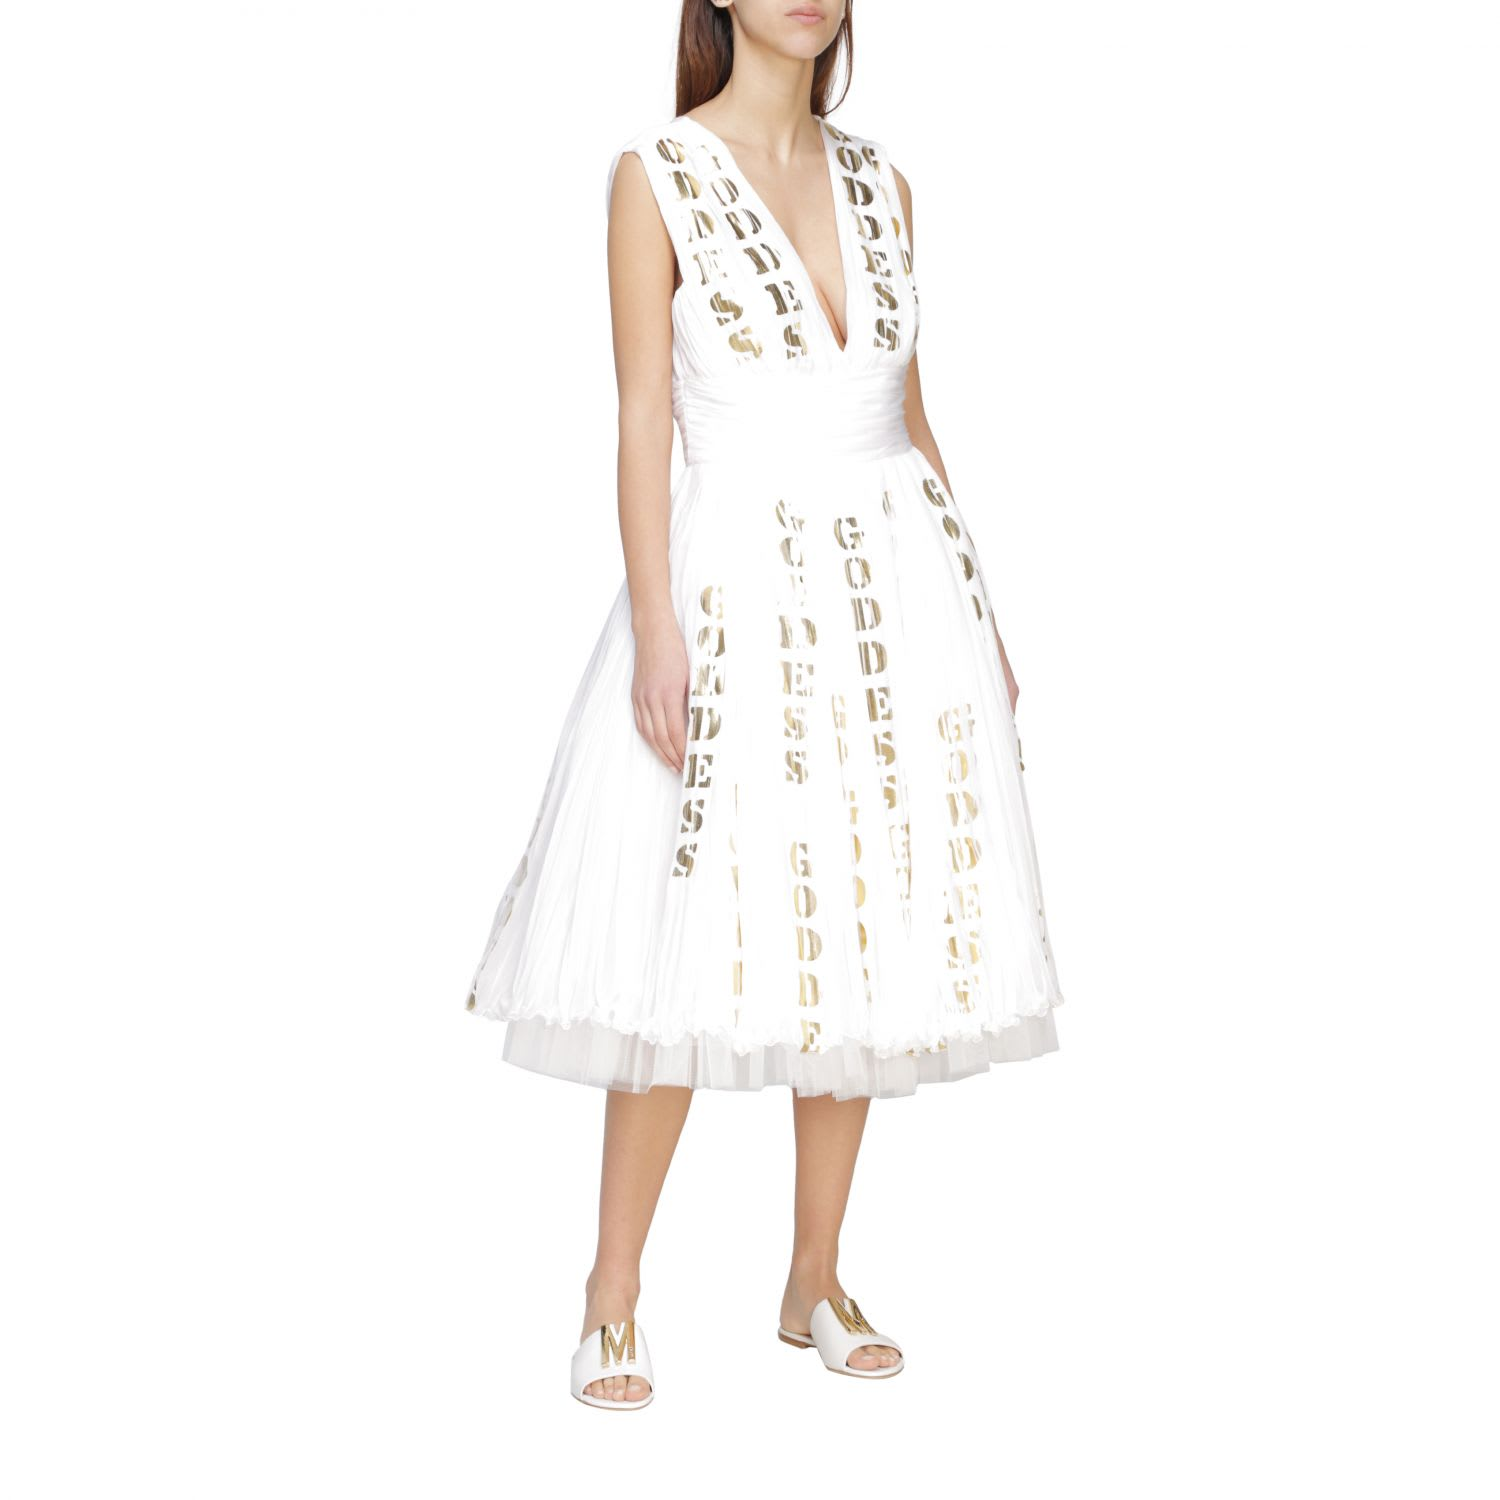 Buy Moschino Couture Dress Moschino Couture Pleated Chiffon Dress With Laminated Prints online, shop Moschino with free shipping